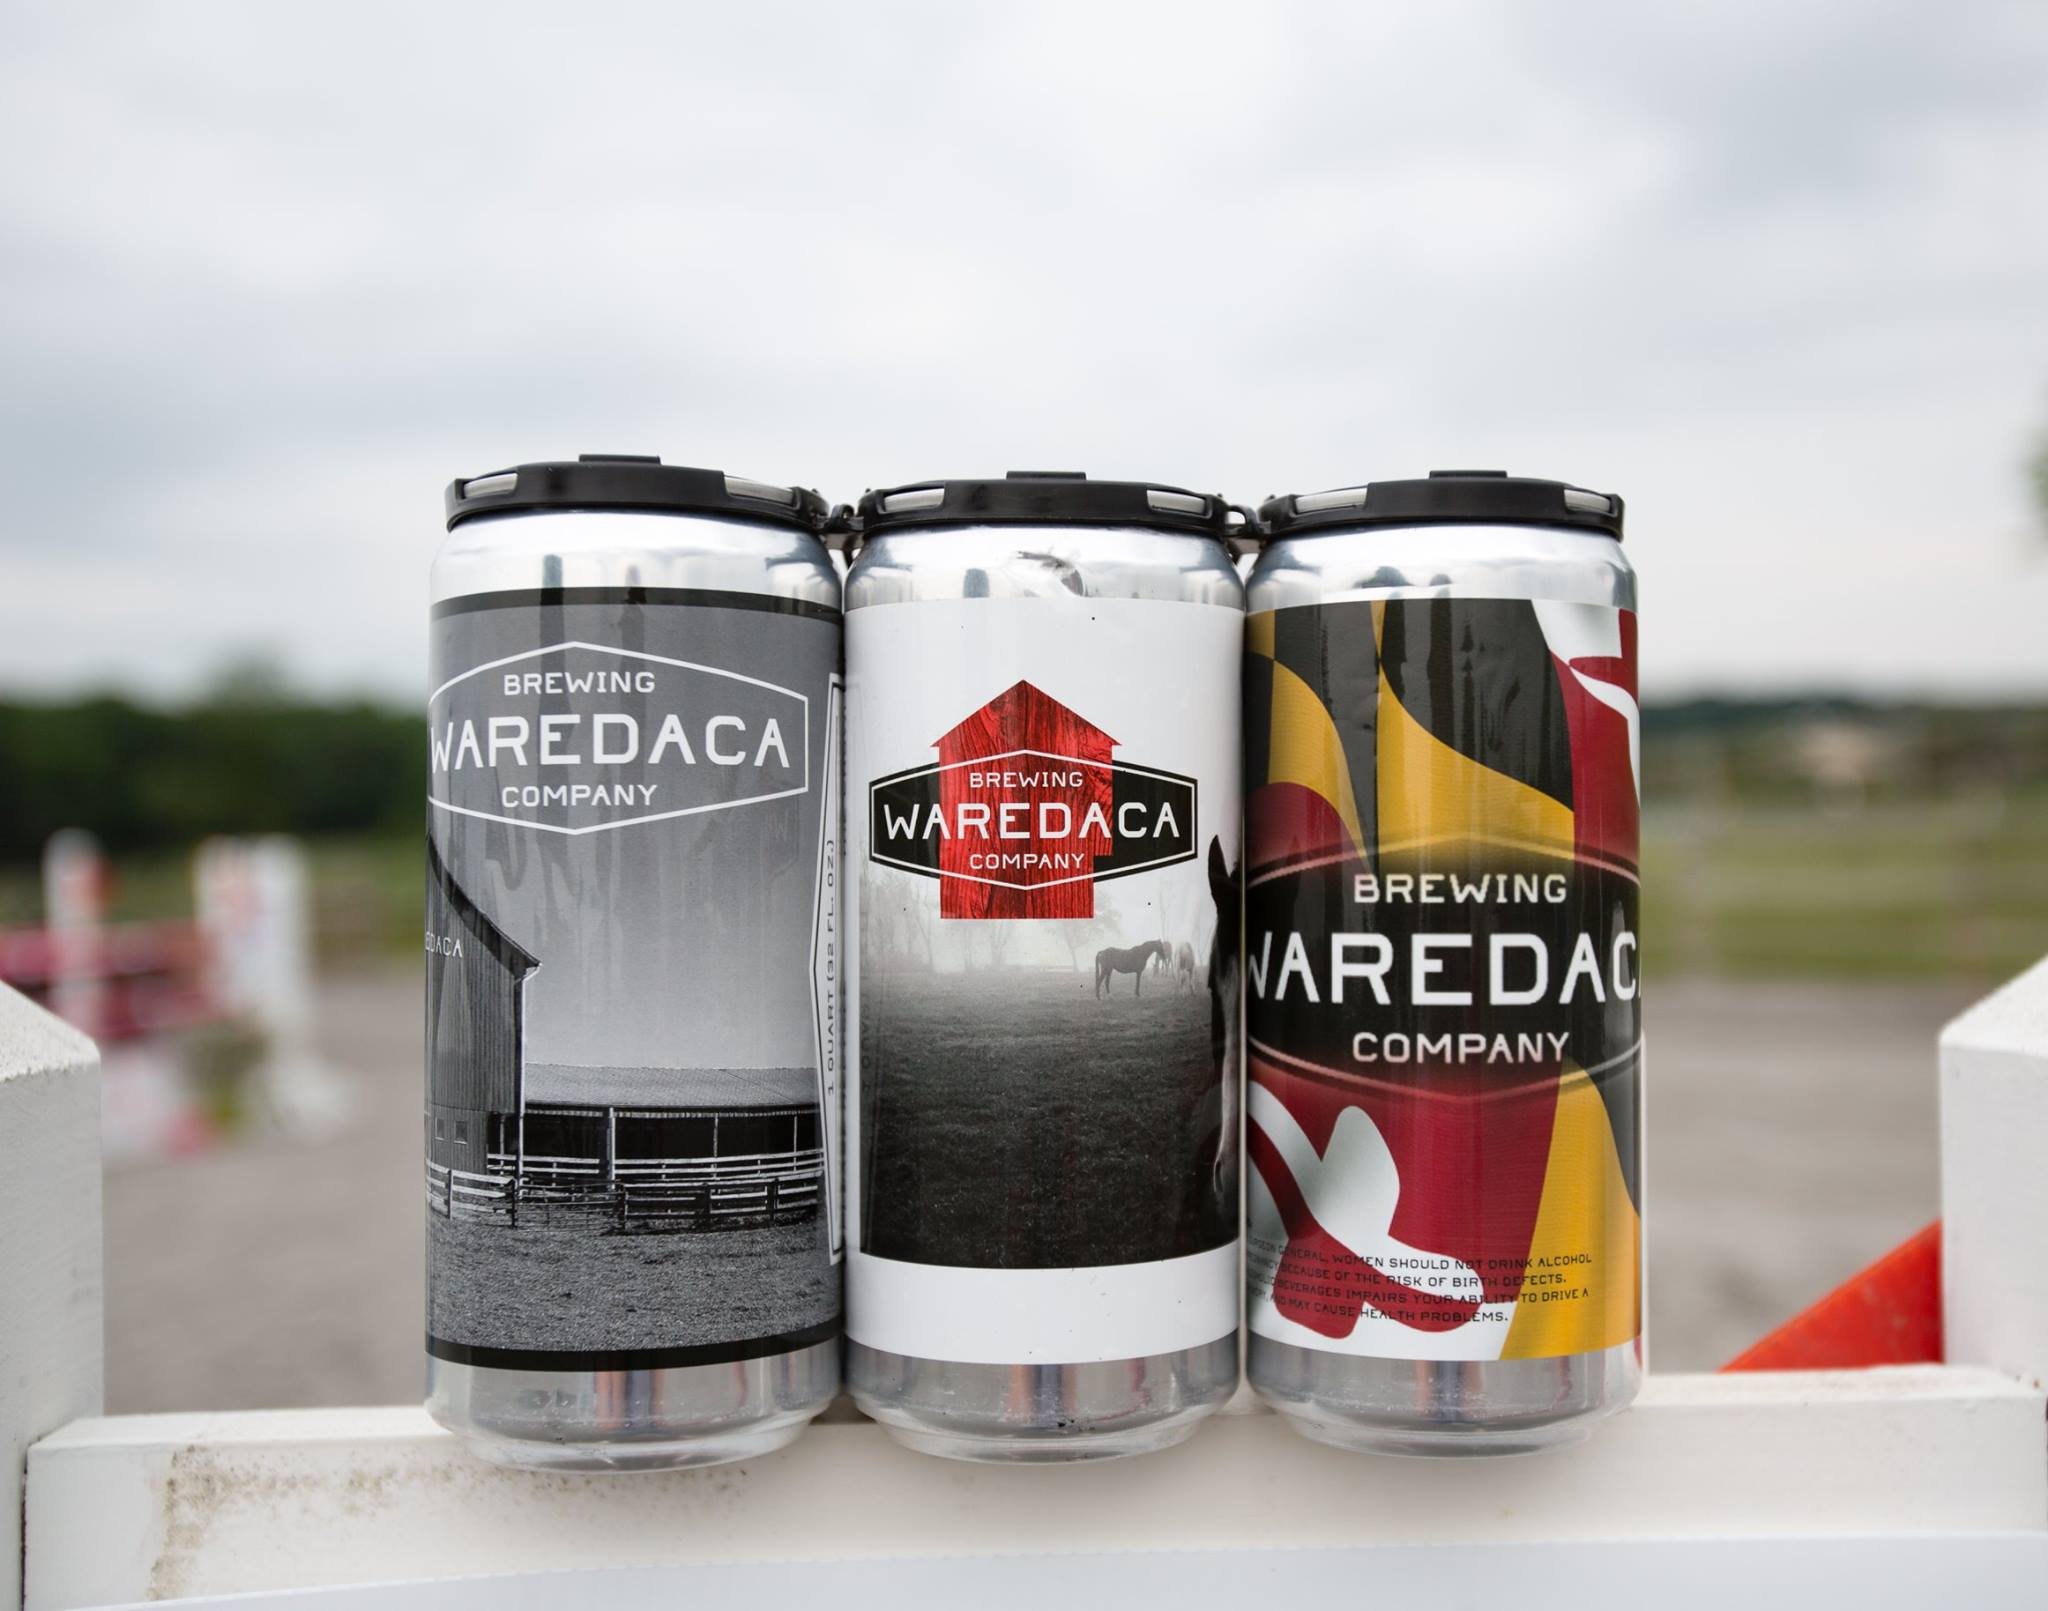 Waredaca Brewing Company